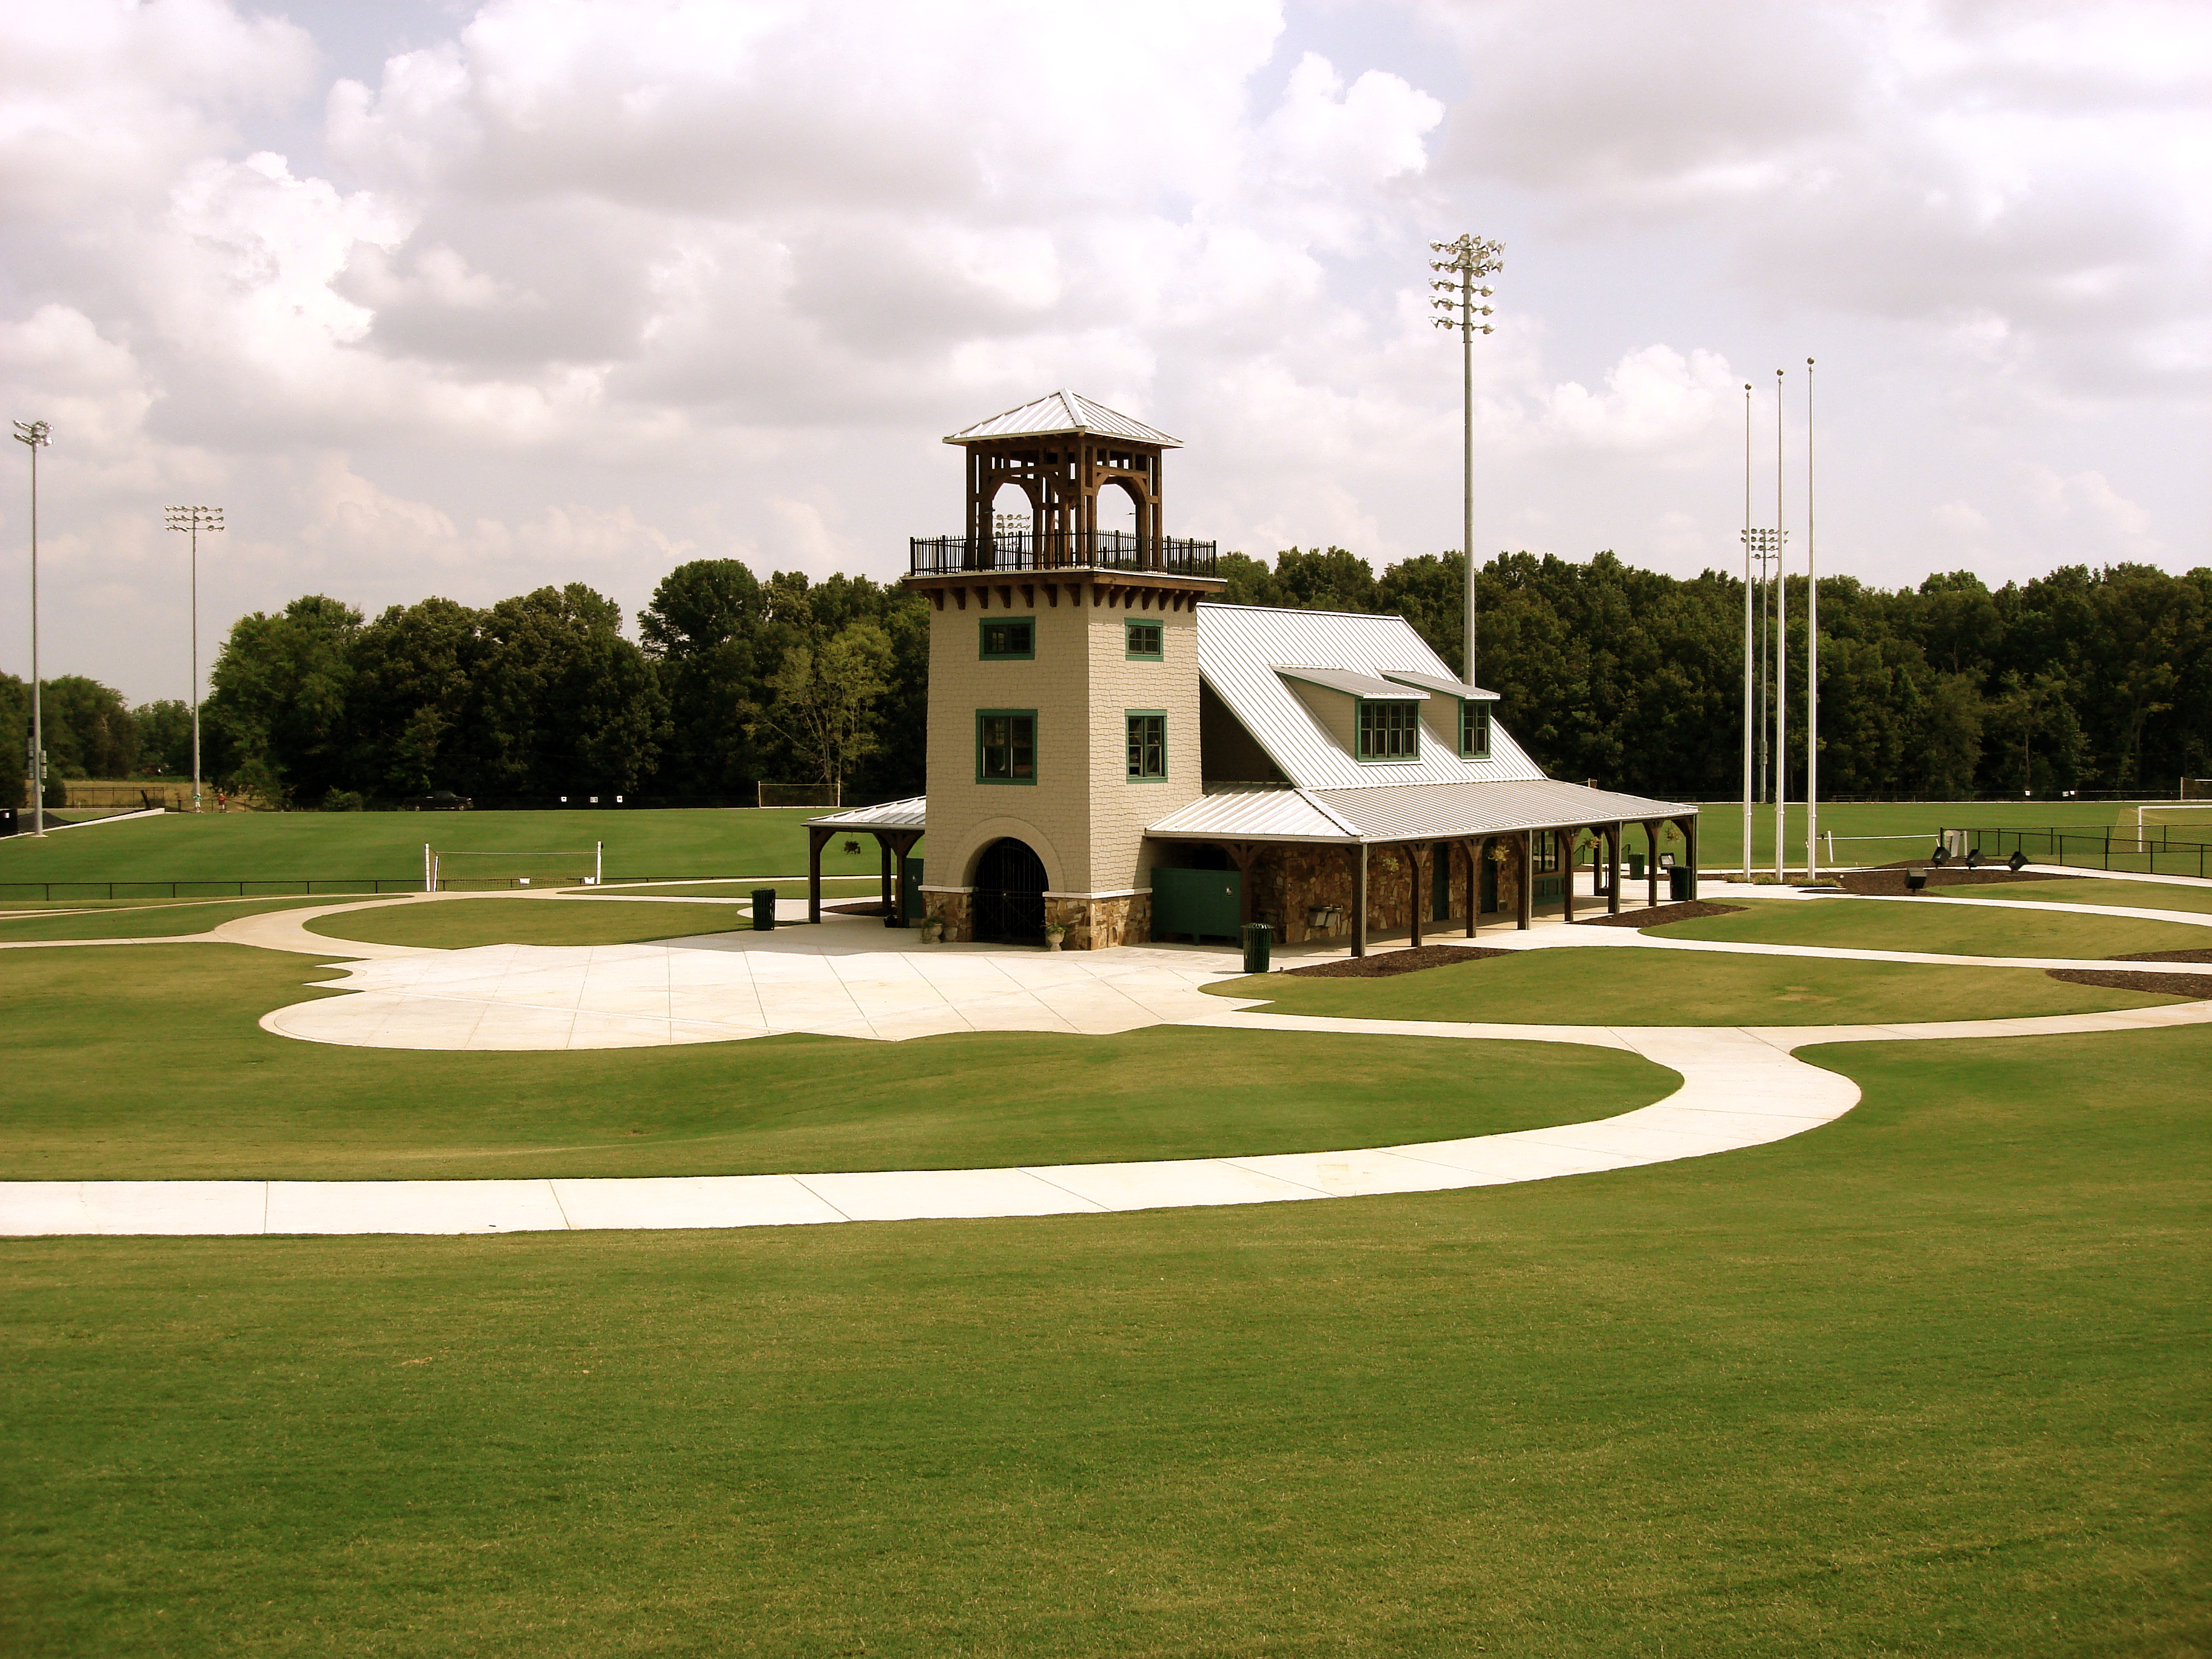 Jack Allen Recreation Complex